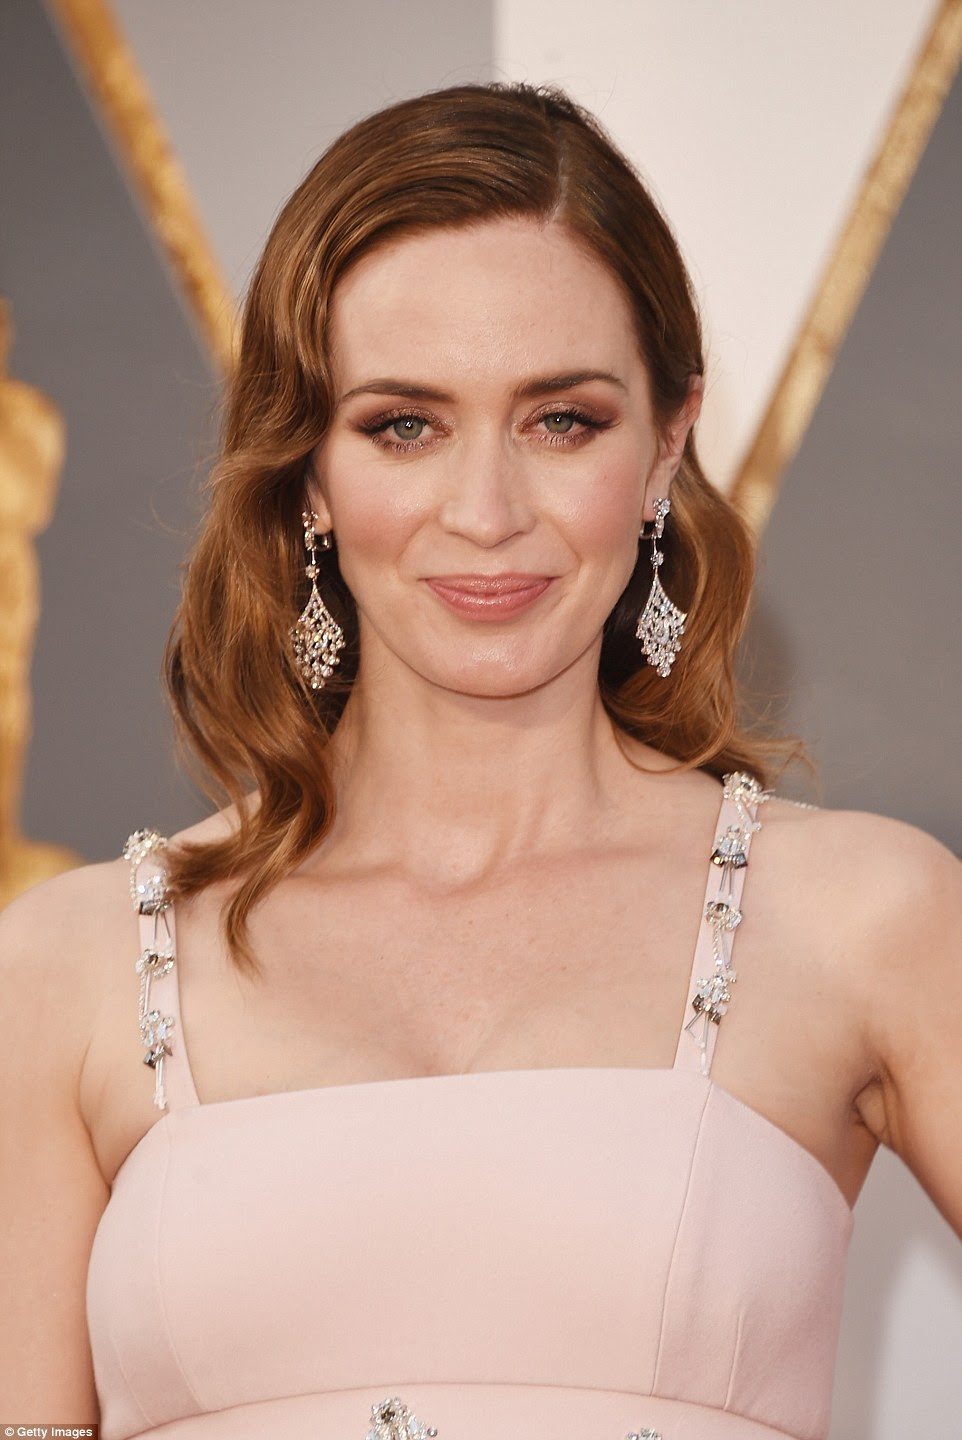 Drop dead gorgeous: The beauty showed off some seriously expensive dangly diamond earrings on the red carpet